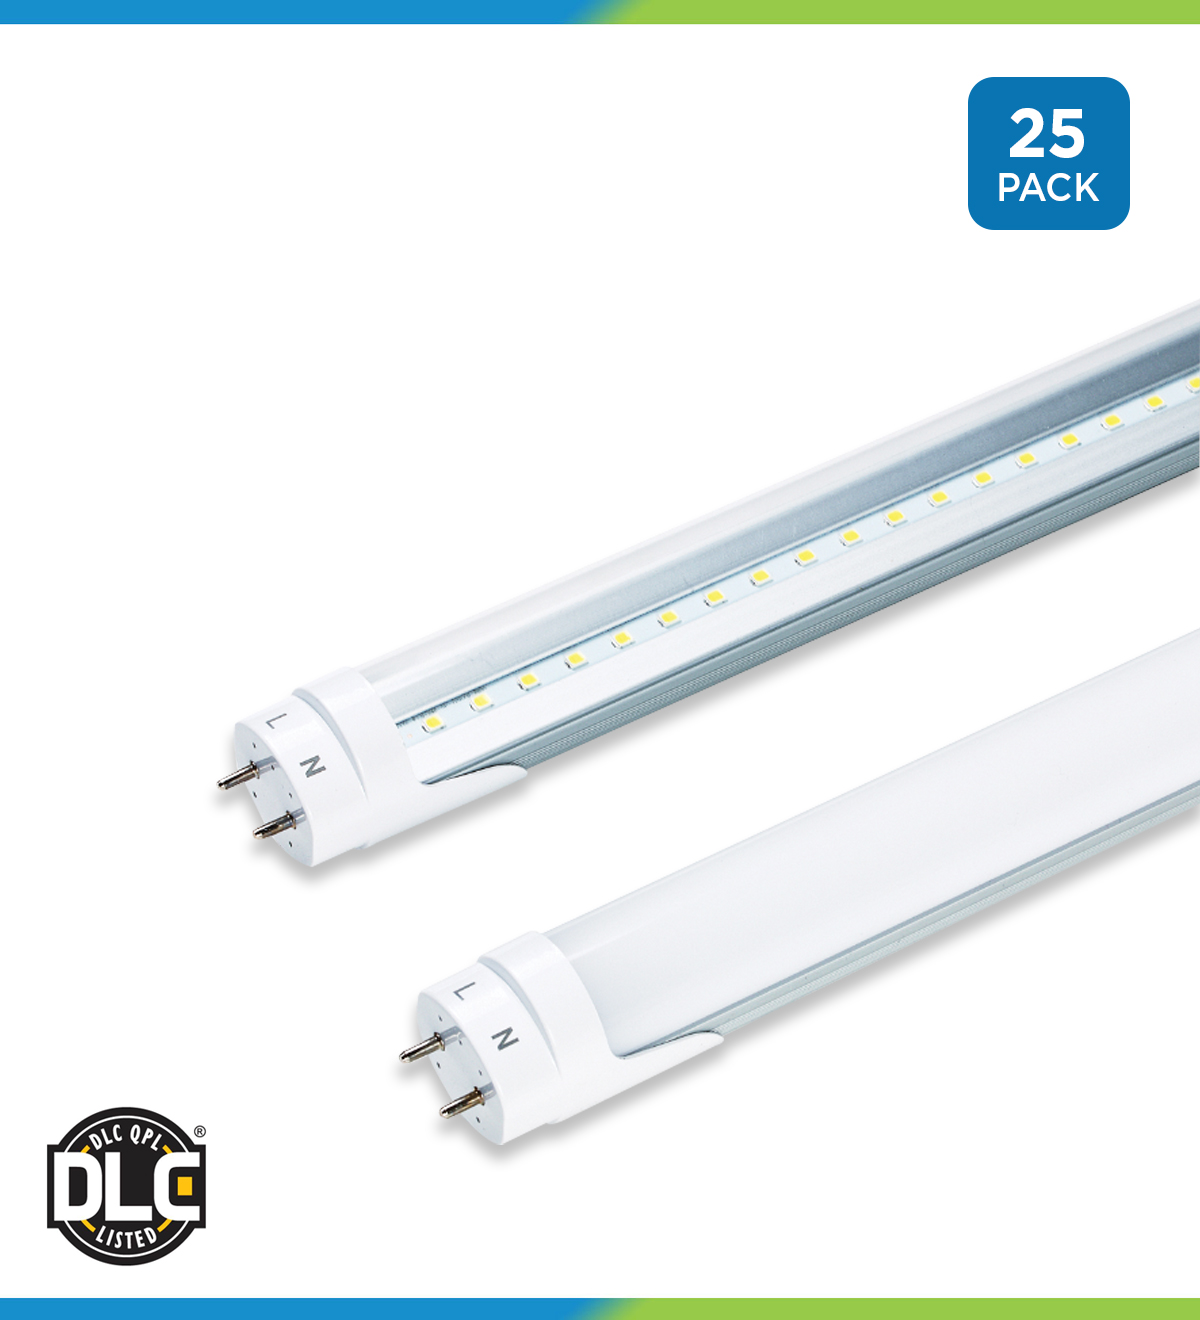 hight resolution of t8 led ballast bypass direct wire tubes 25 pack 4 foot